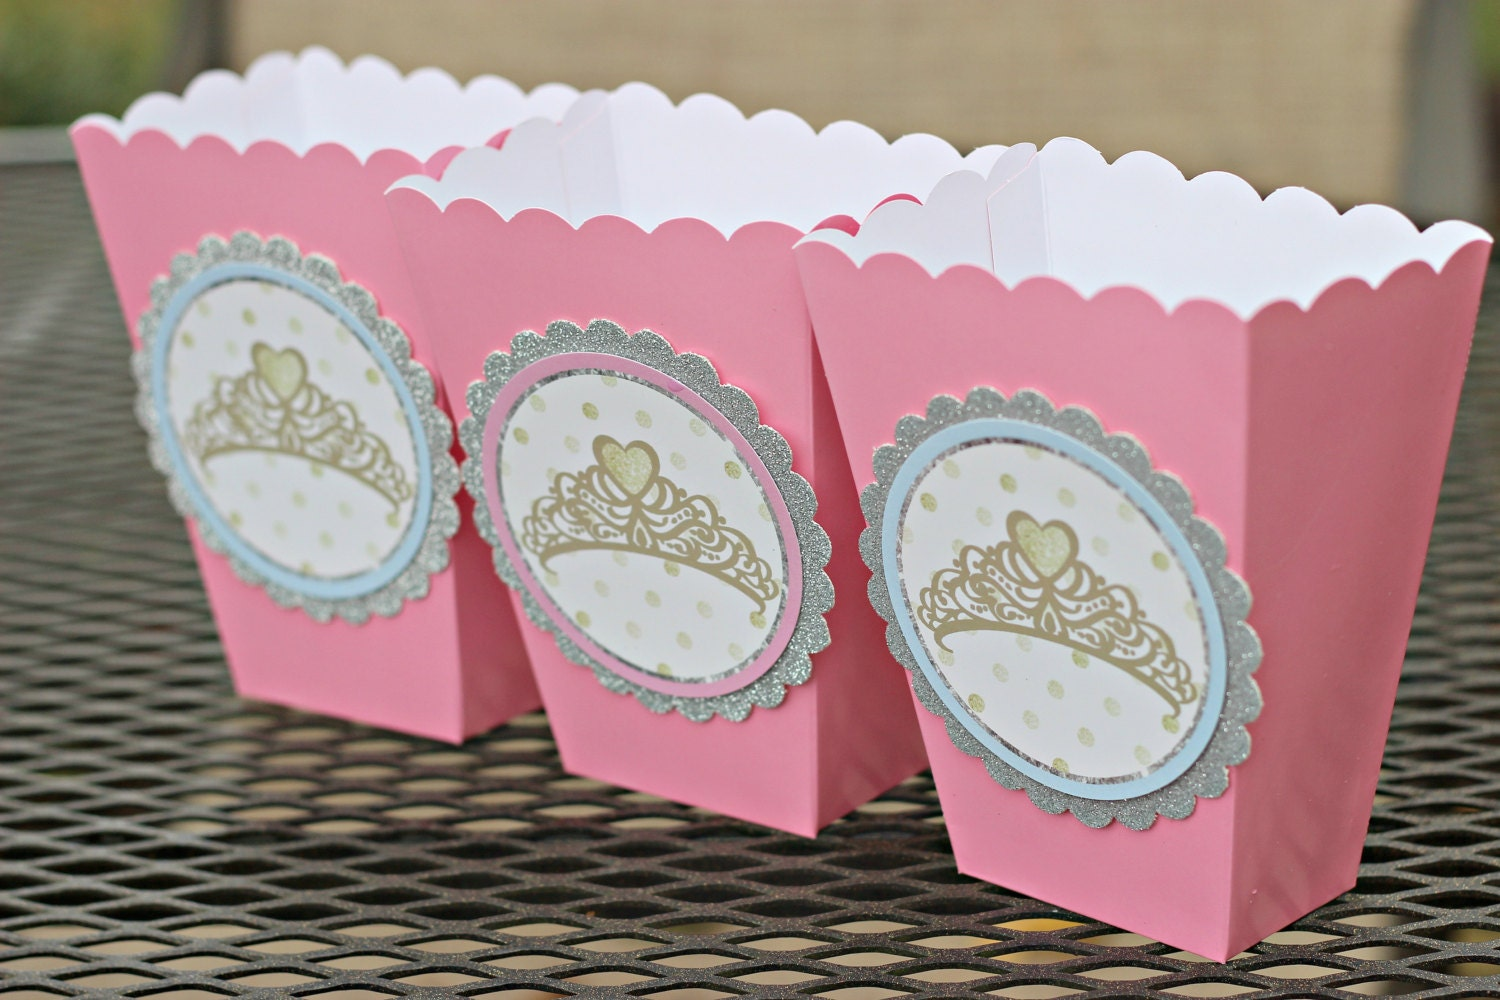 ENCHANTED PRINCESS Popcorn Boxes Treat Boxes Treat Cups Our